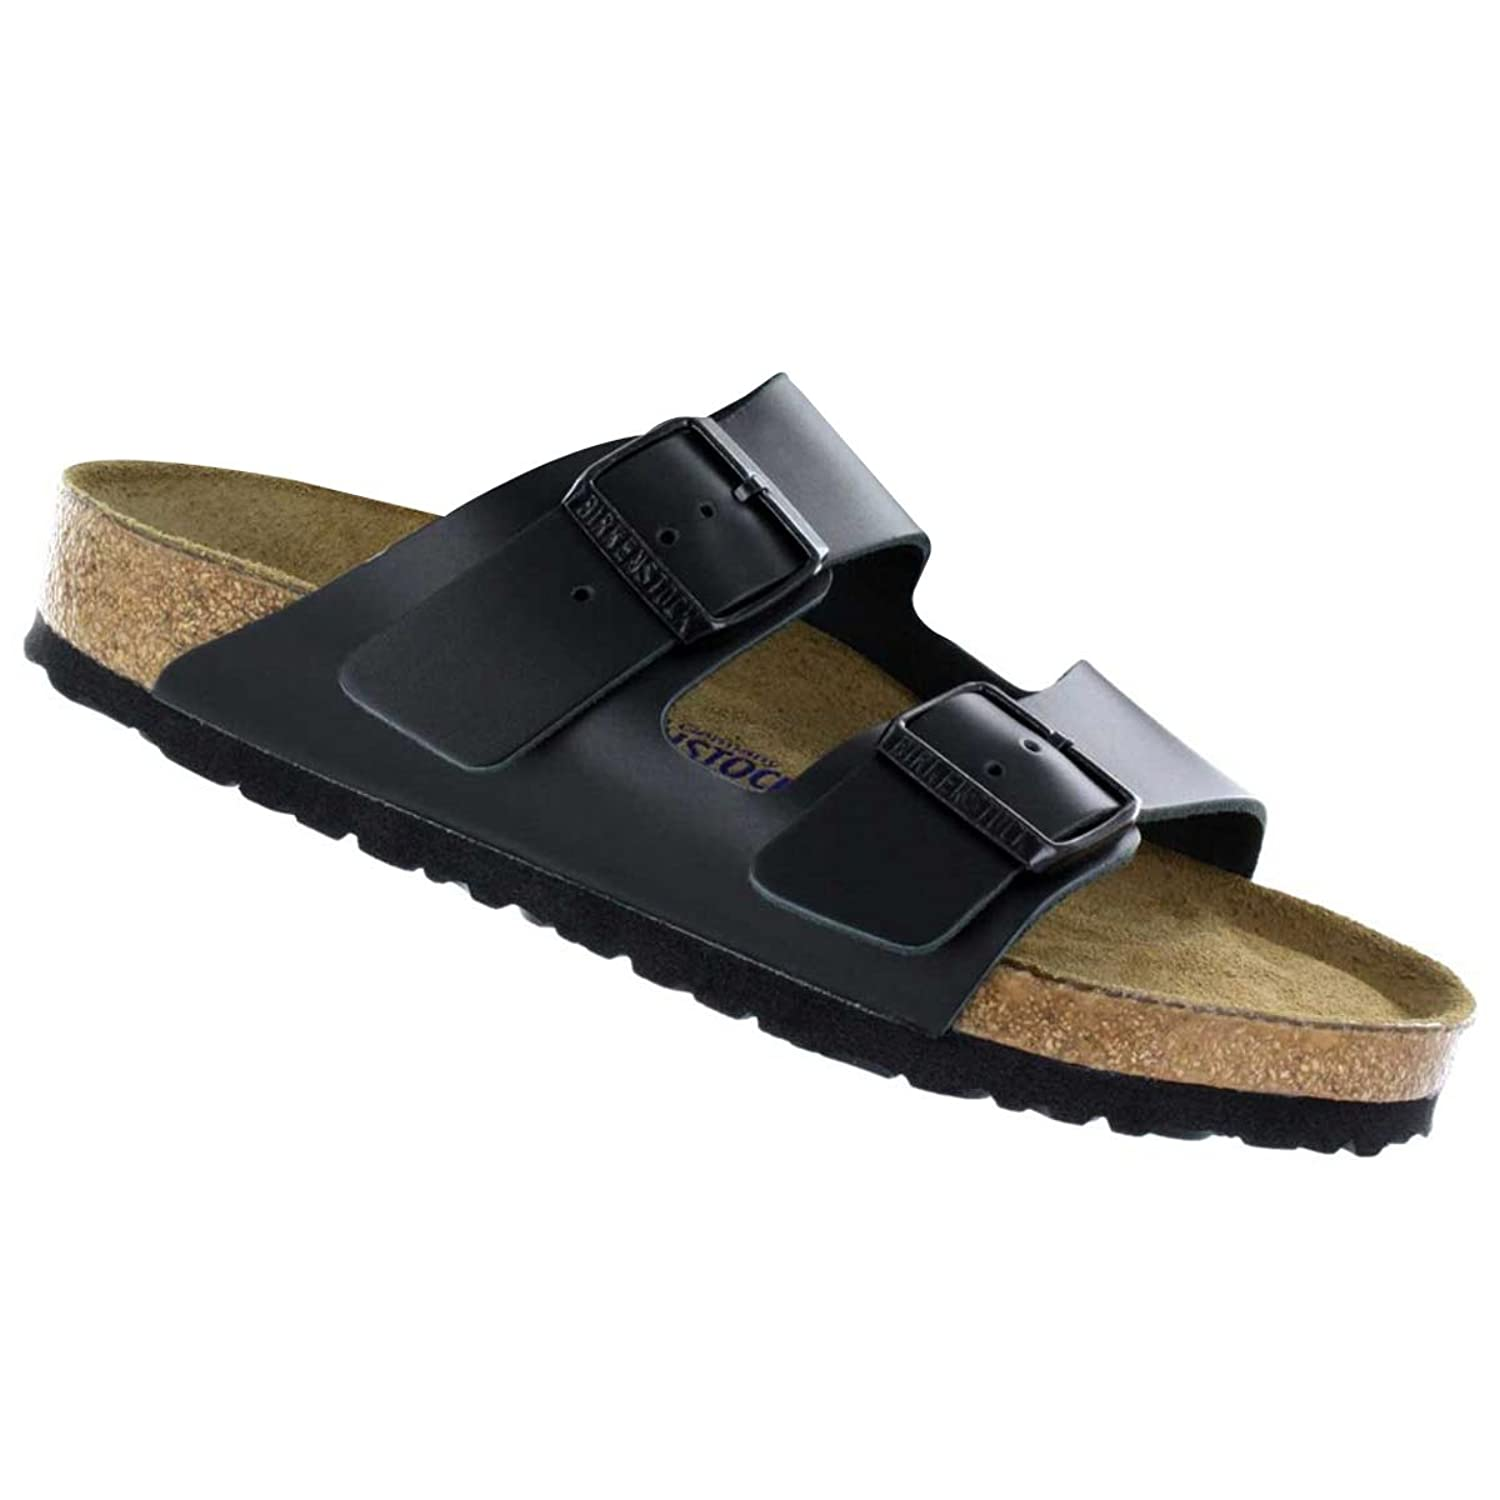 Birkenstock Men's Arizona 2-Strap Cork Footbed Sandal бюстгальтер 2 штуки quelle arizona 886245